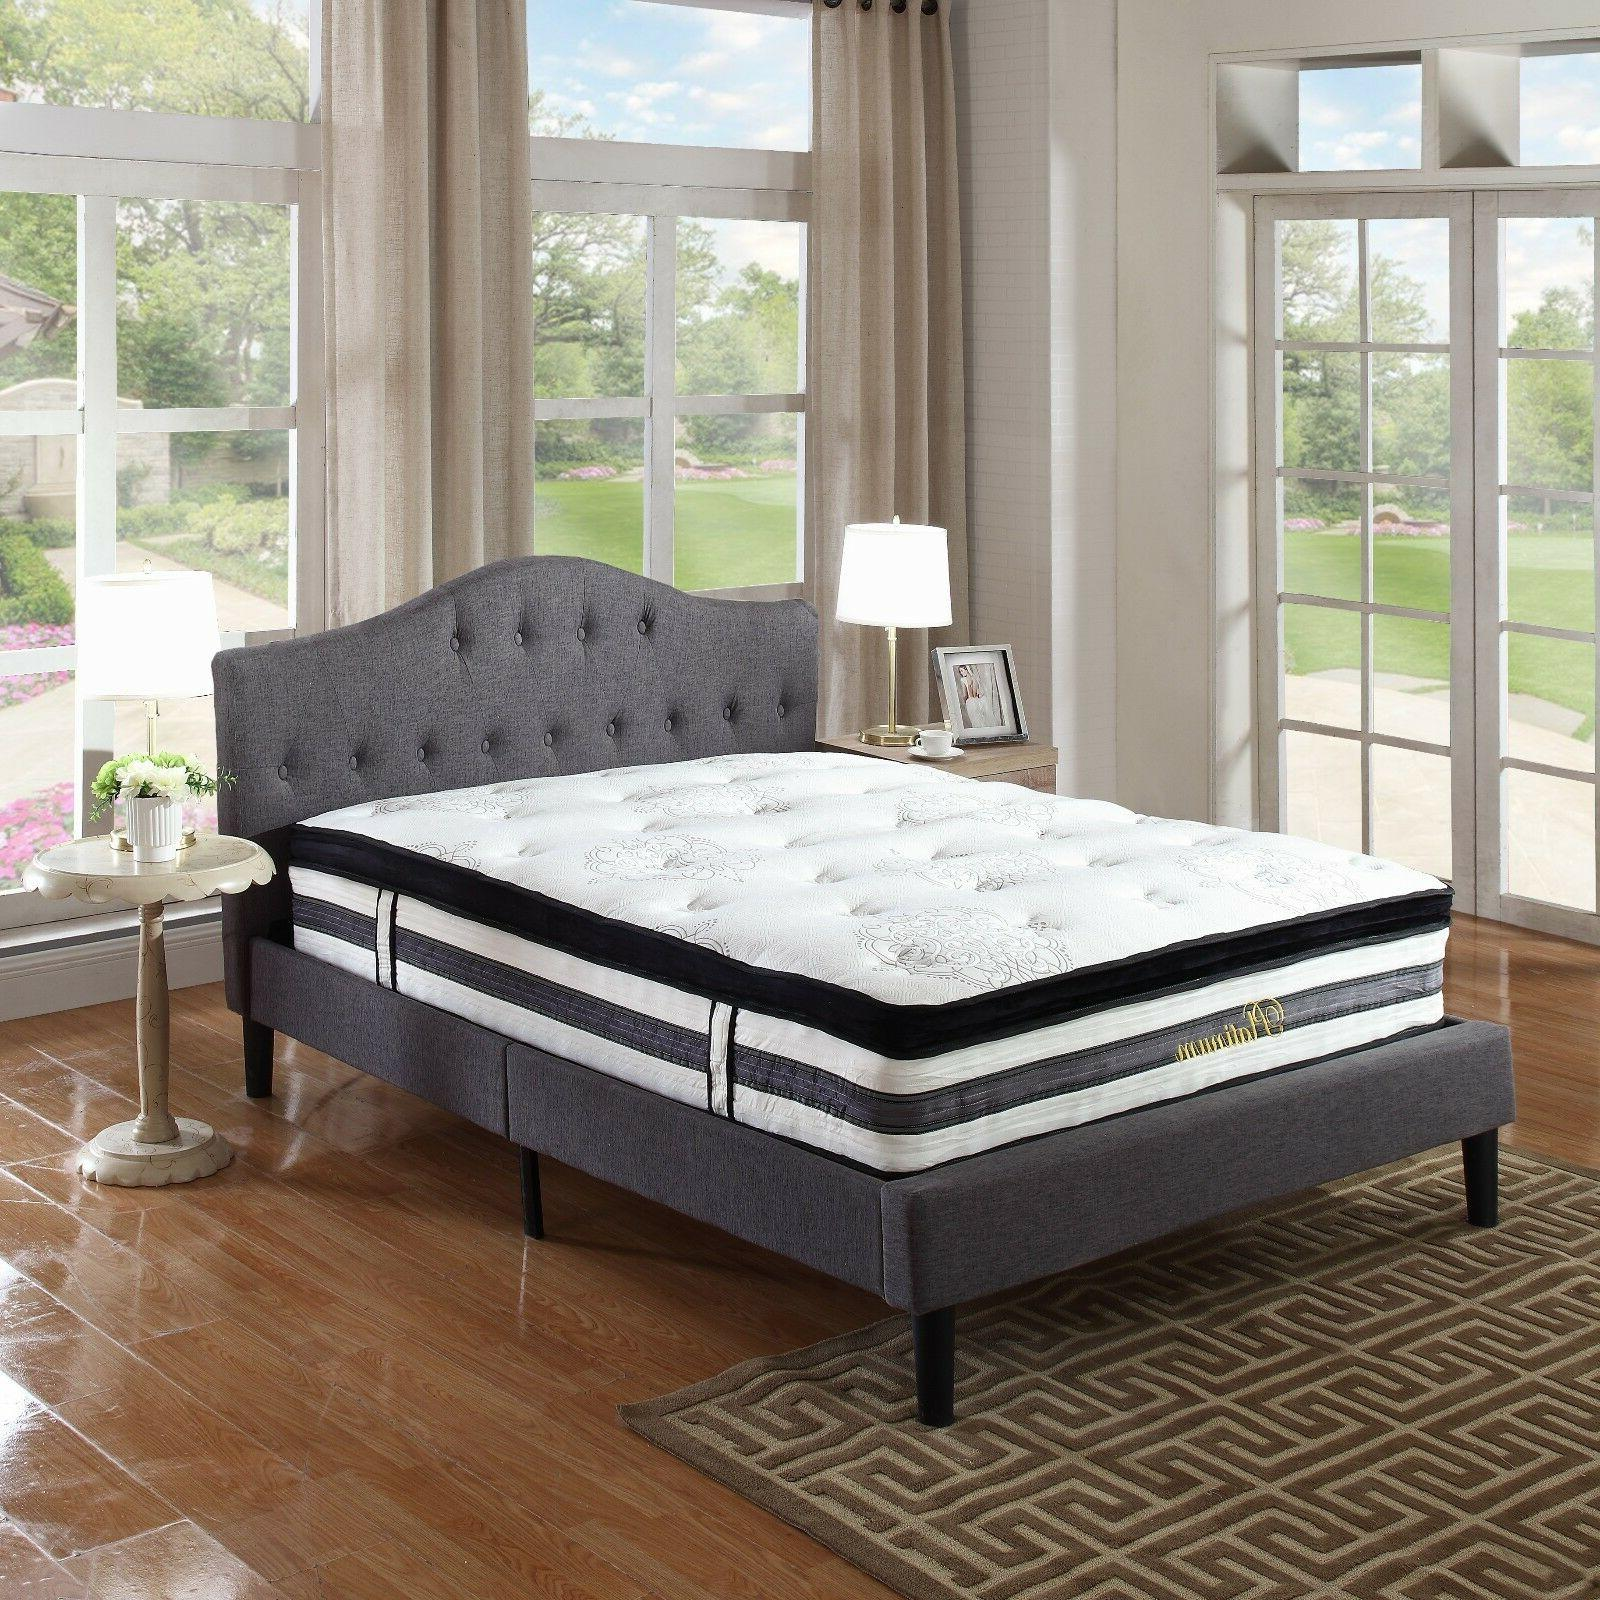 15 inch Hybrid and Memory Mattress Queen